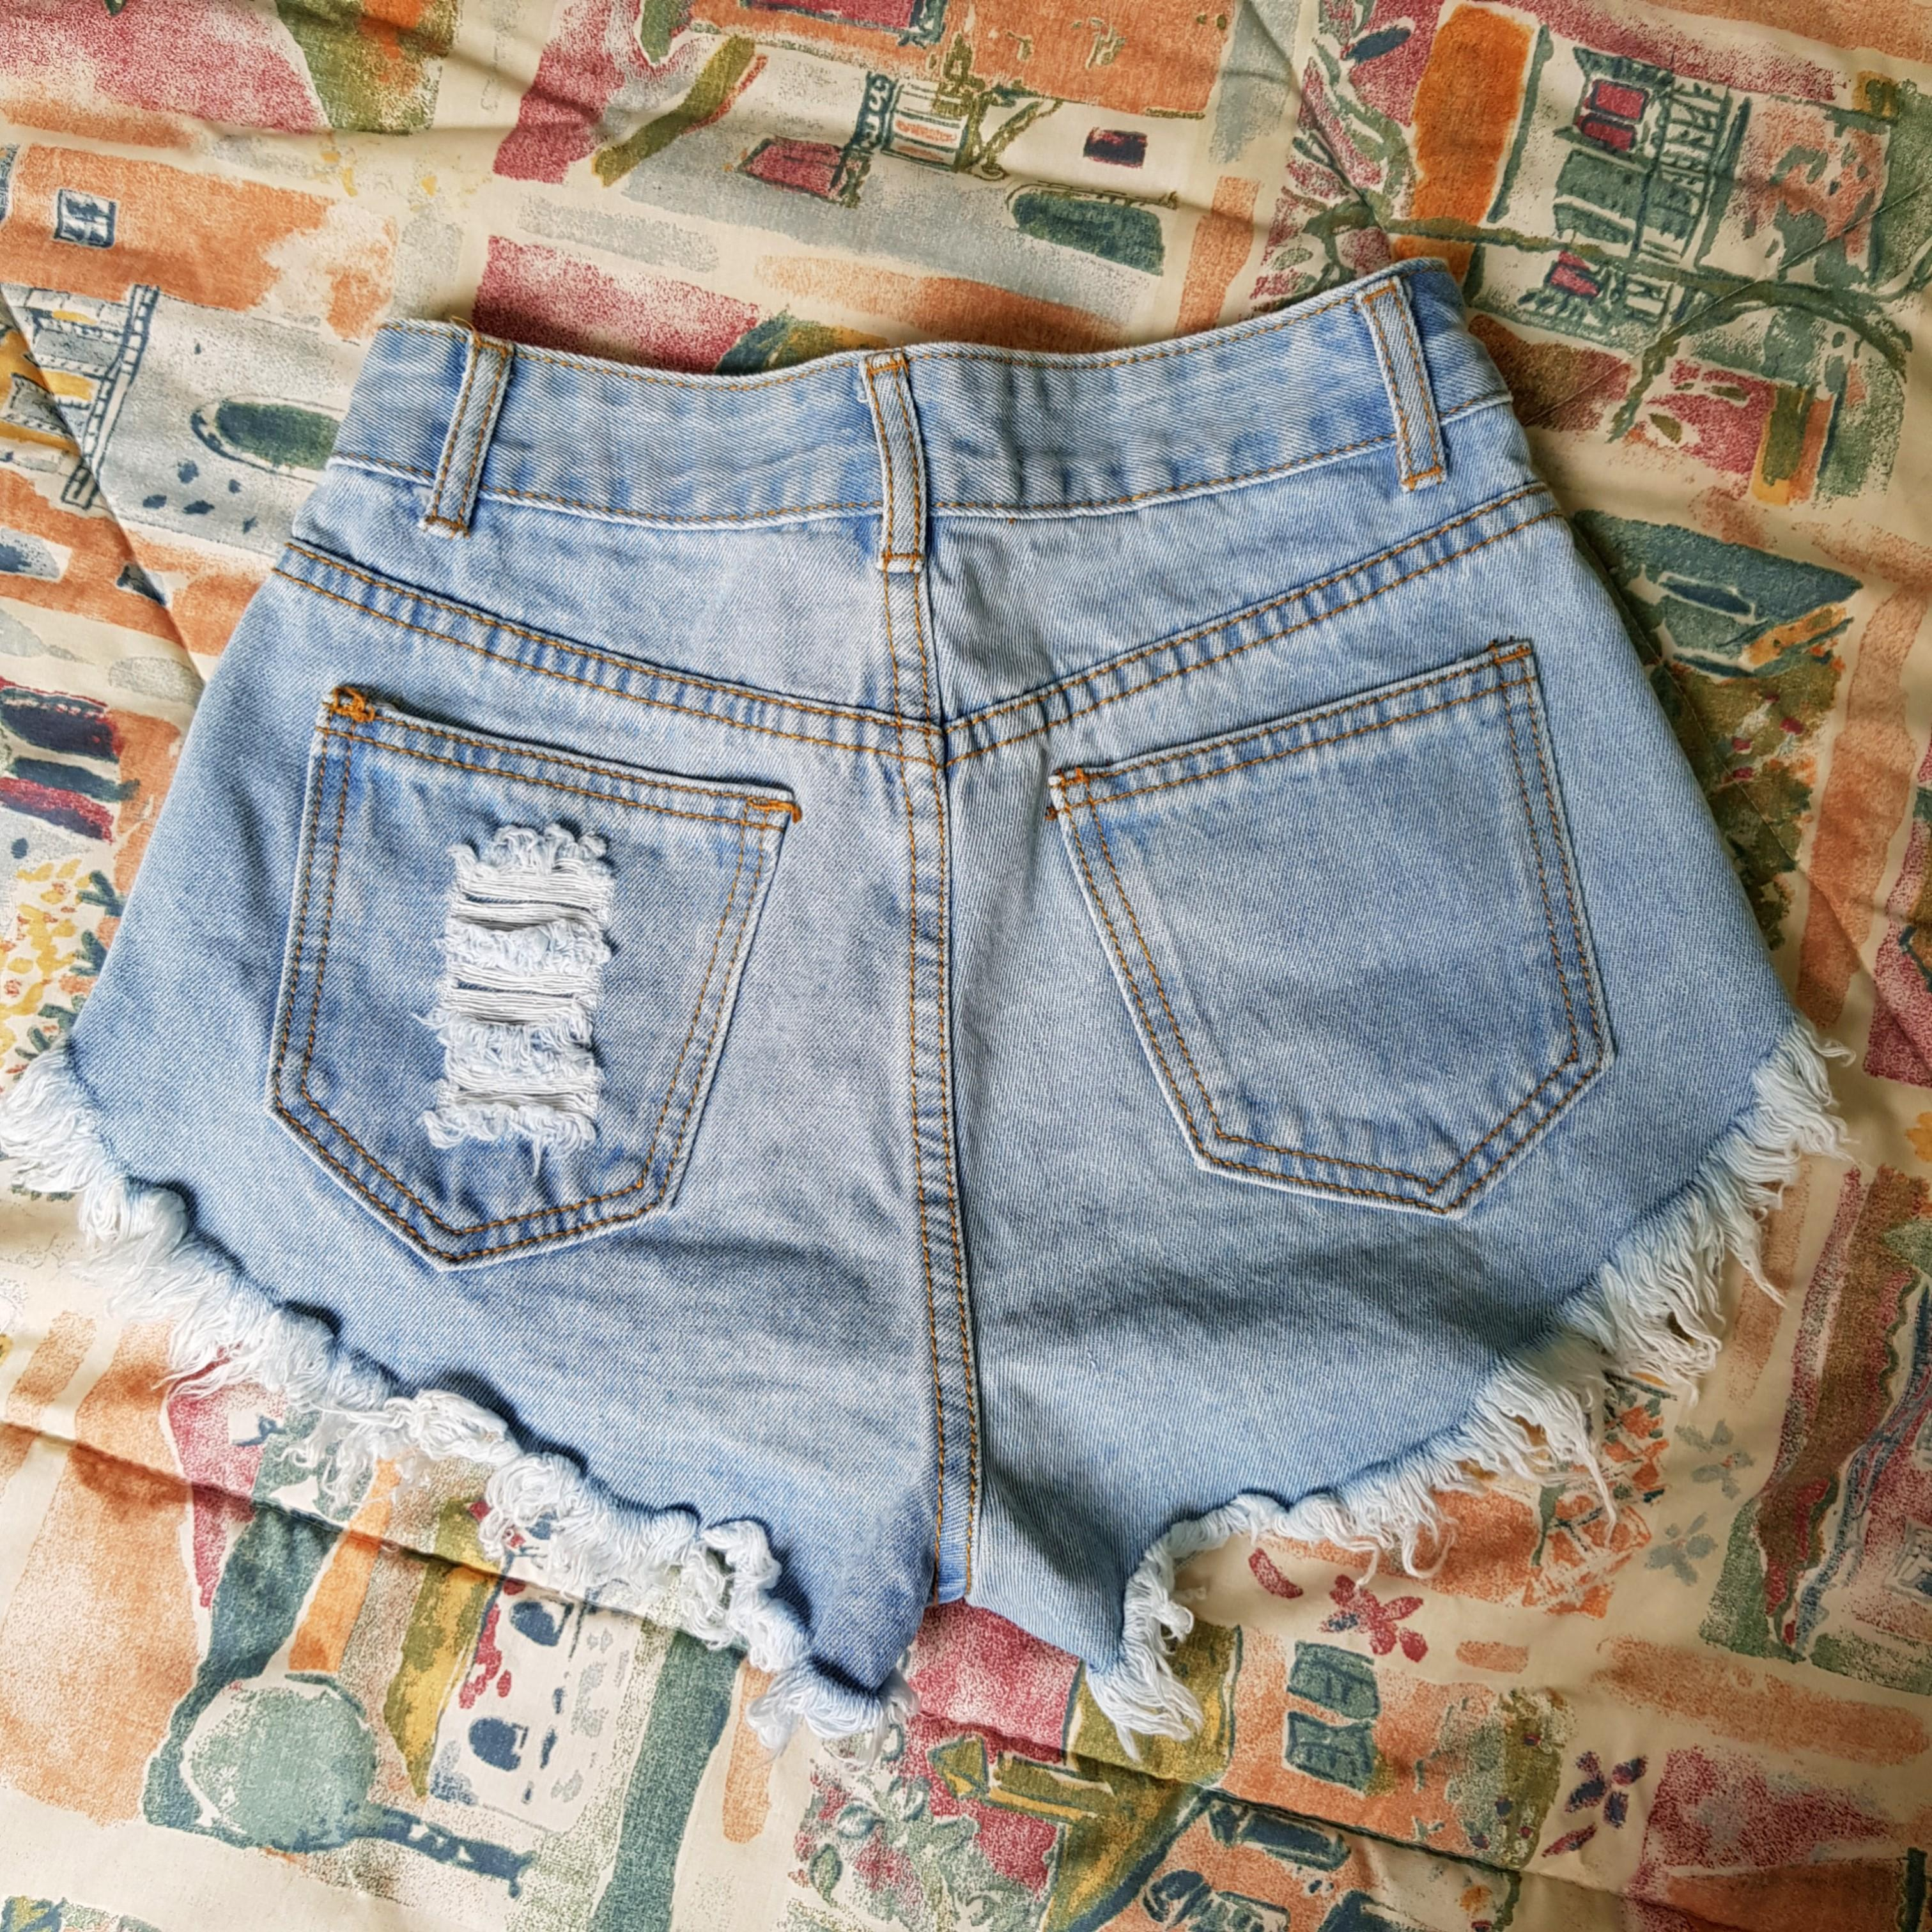 Studded High Waisted Ripped Jeans Shorts